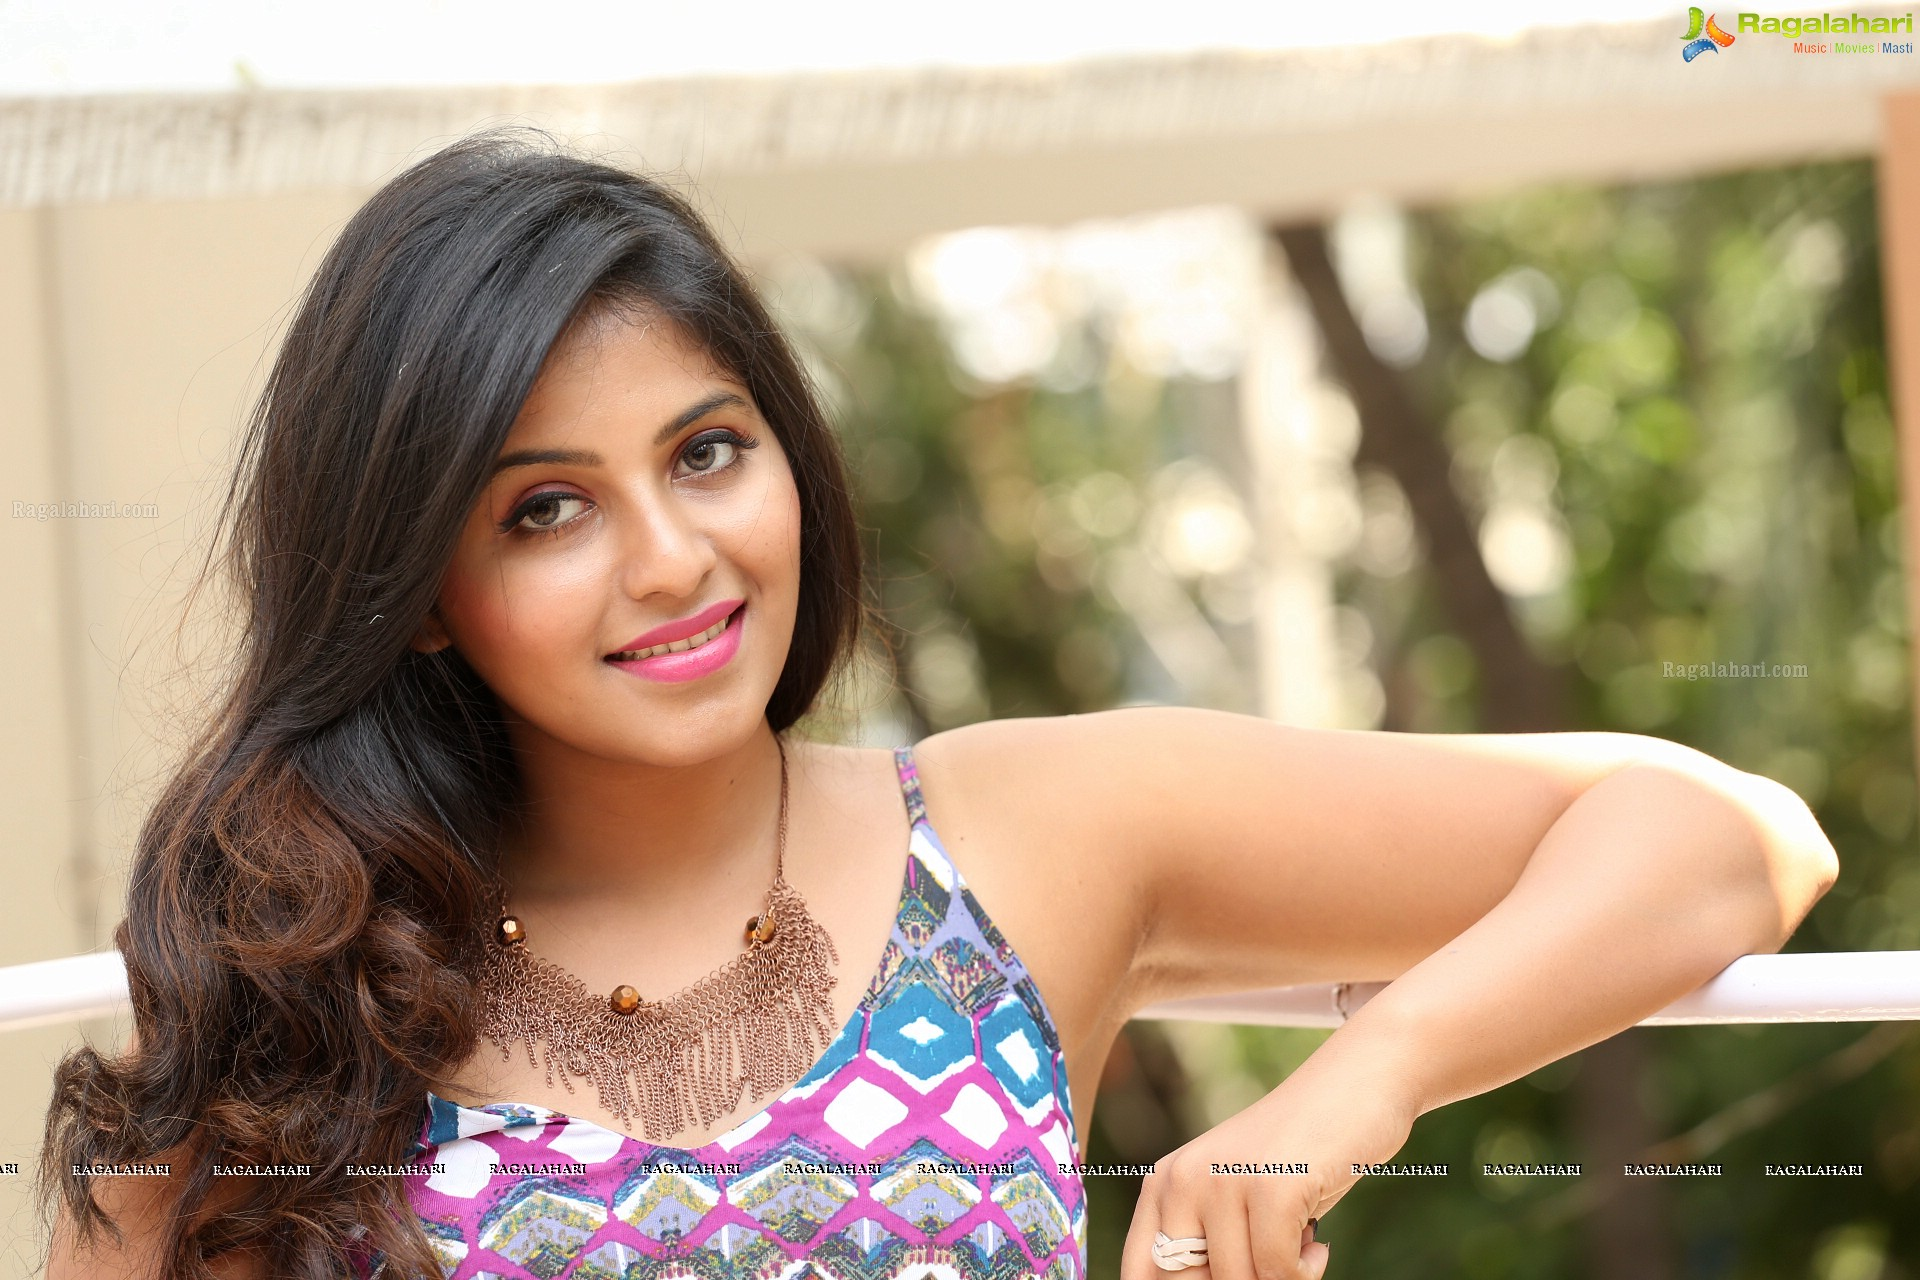 anjali (hd) image 502 | tollywood heroines posters,images, pics